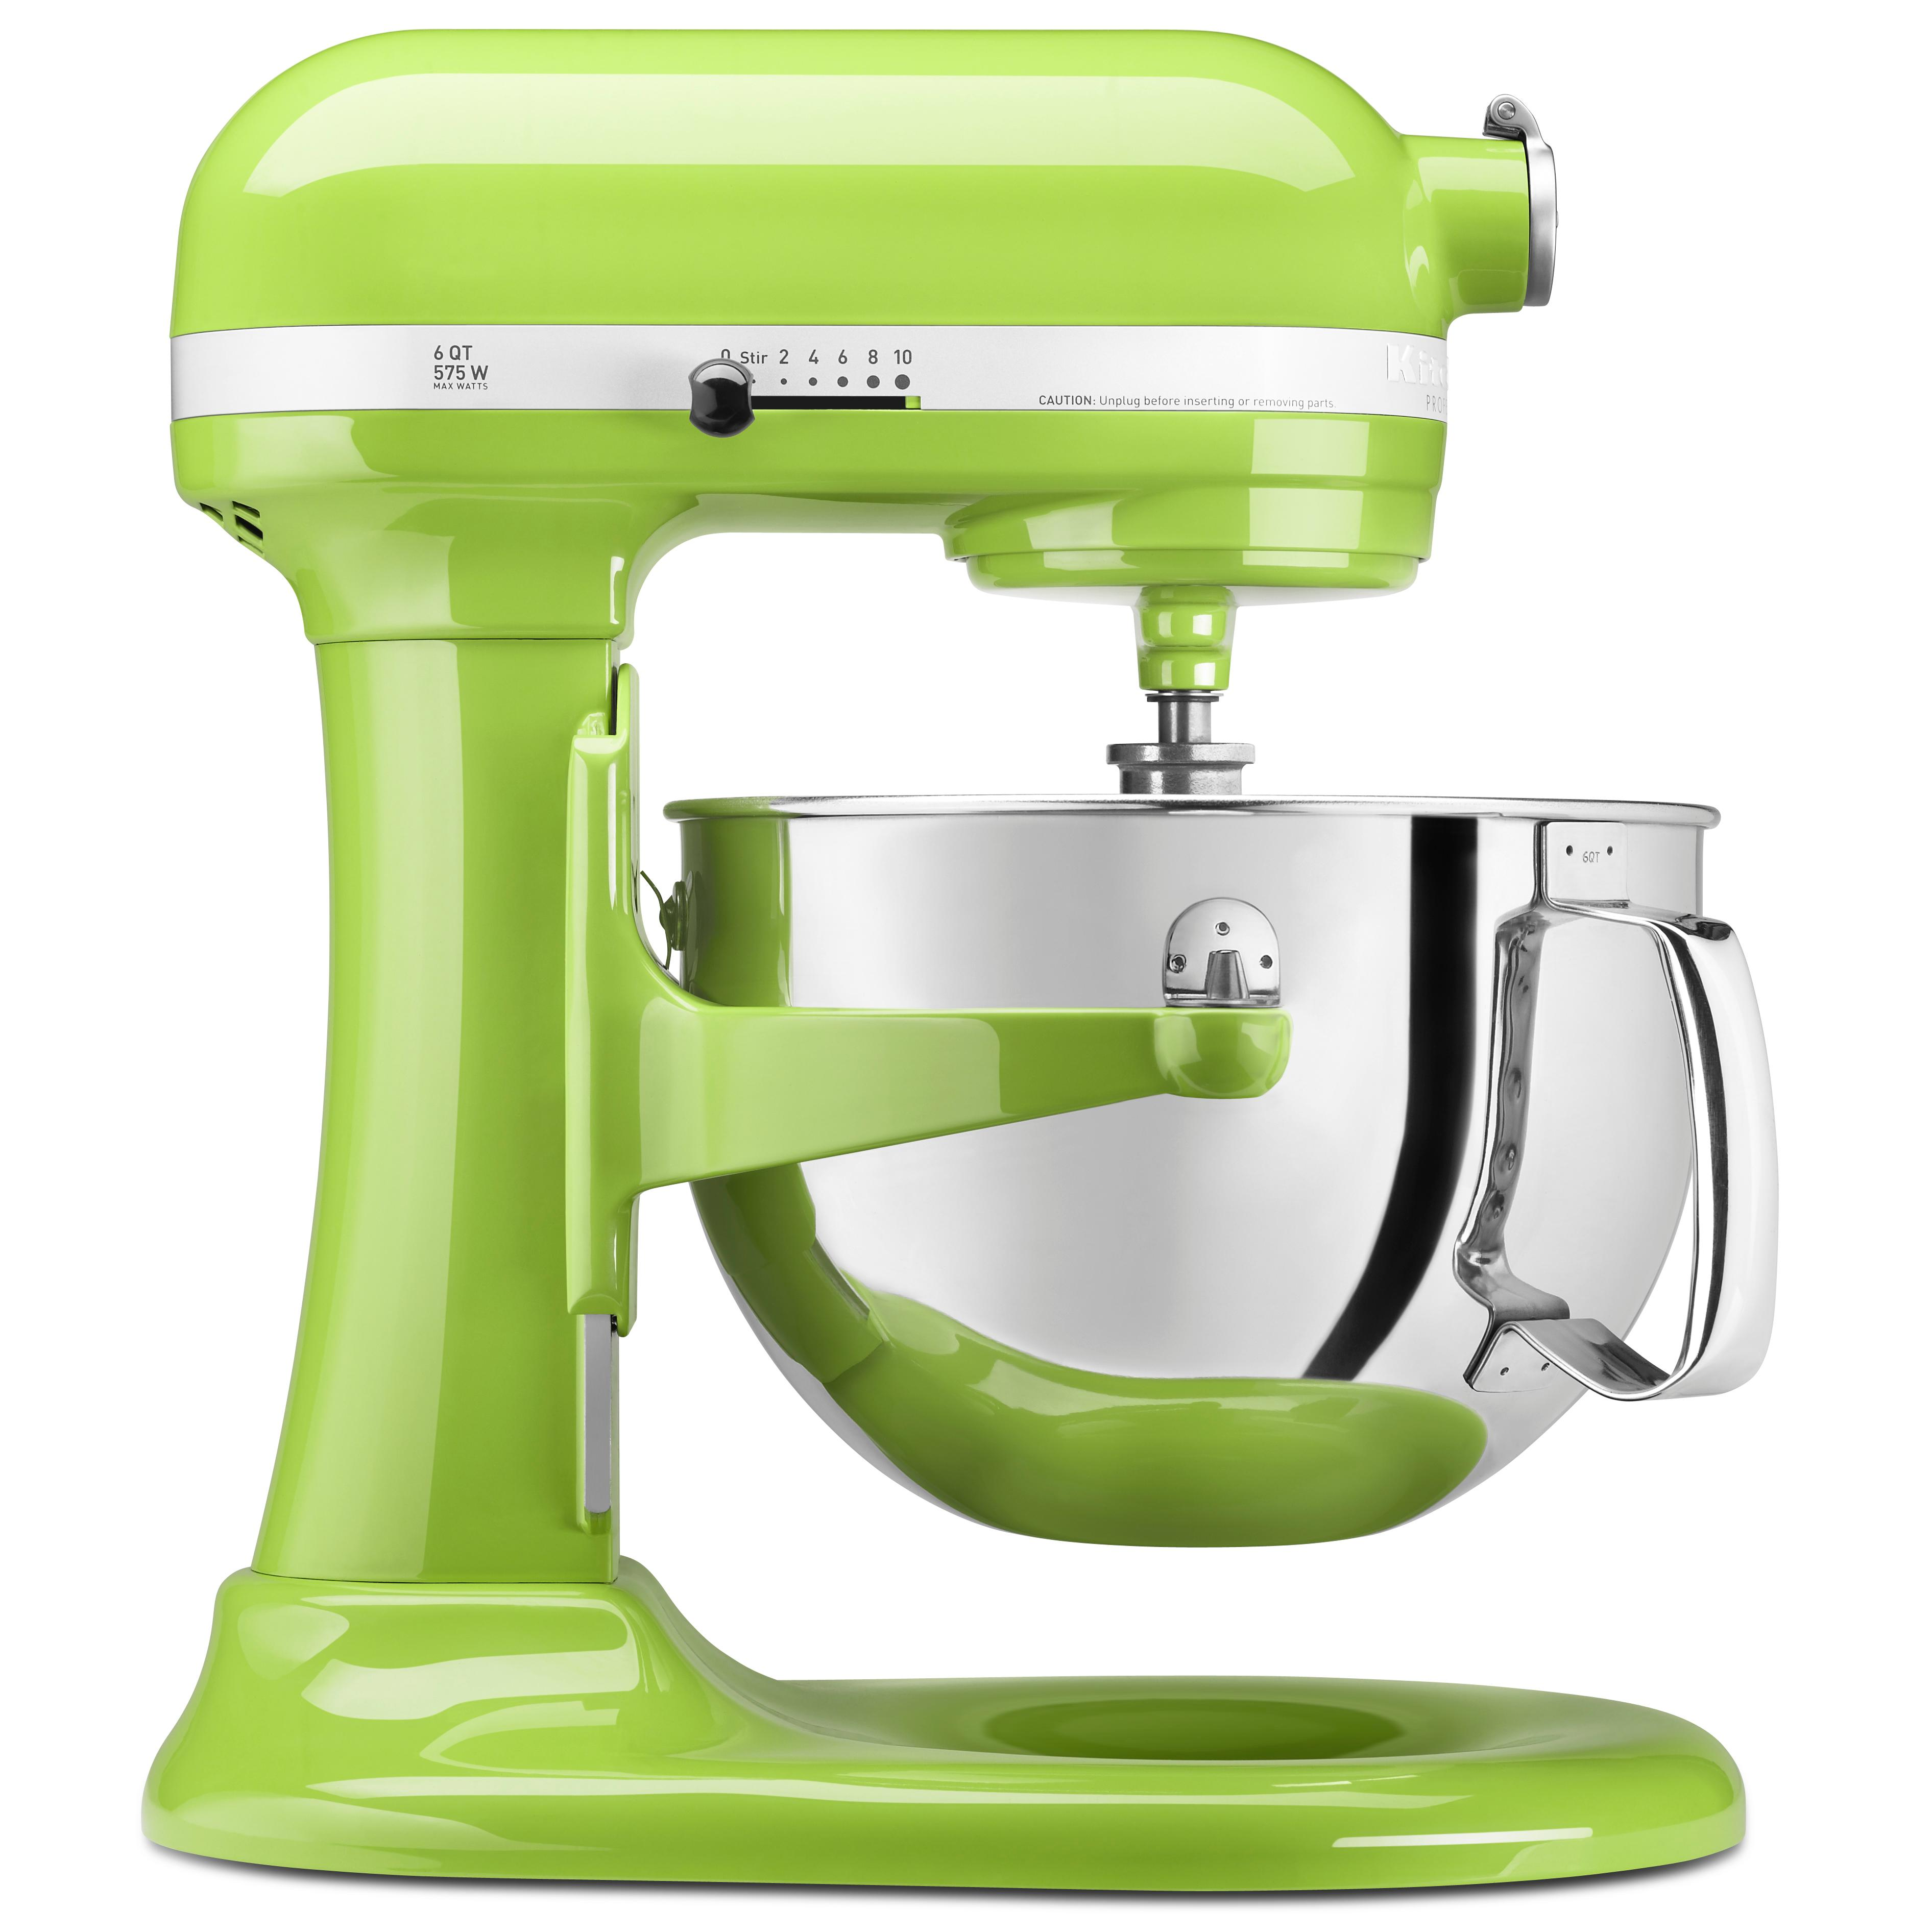 Kitchen Aid Mixer To Shred Parmesan Cheese